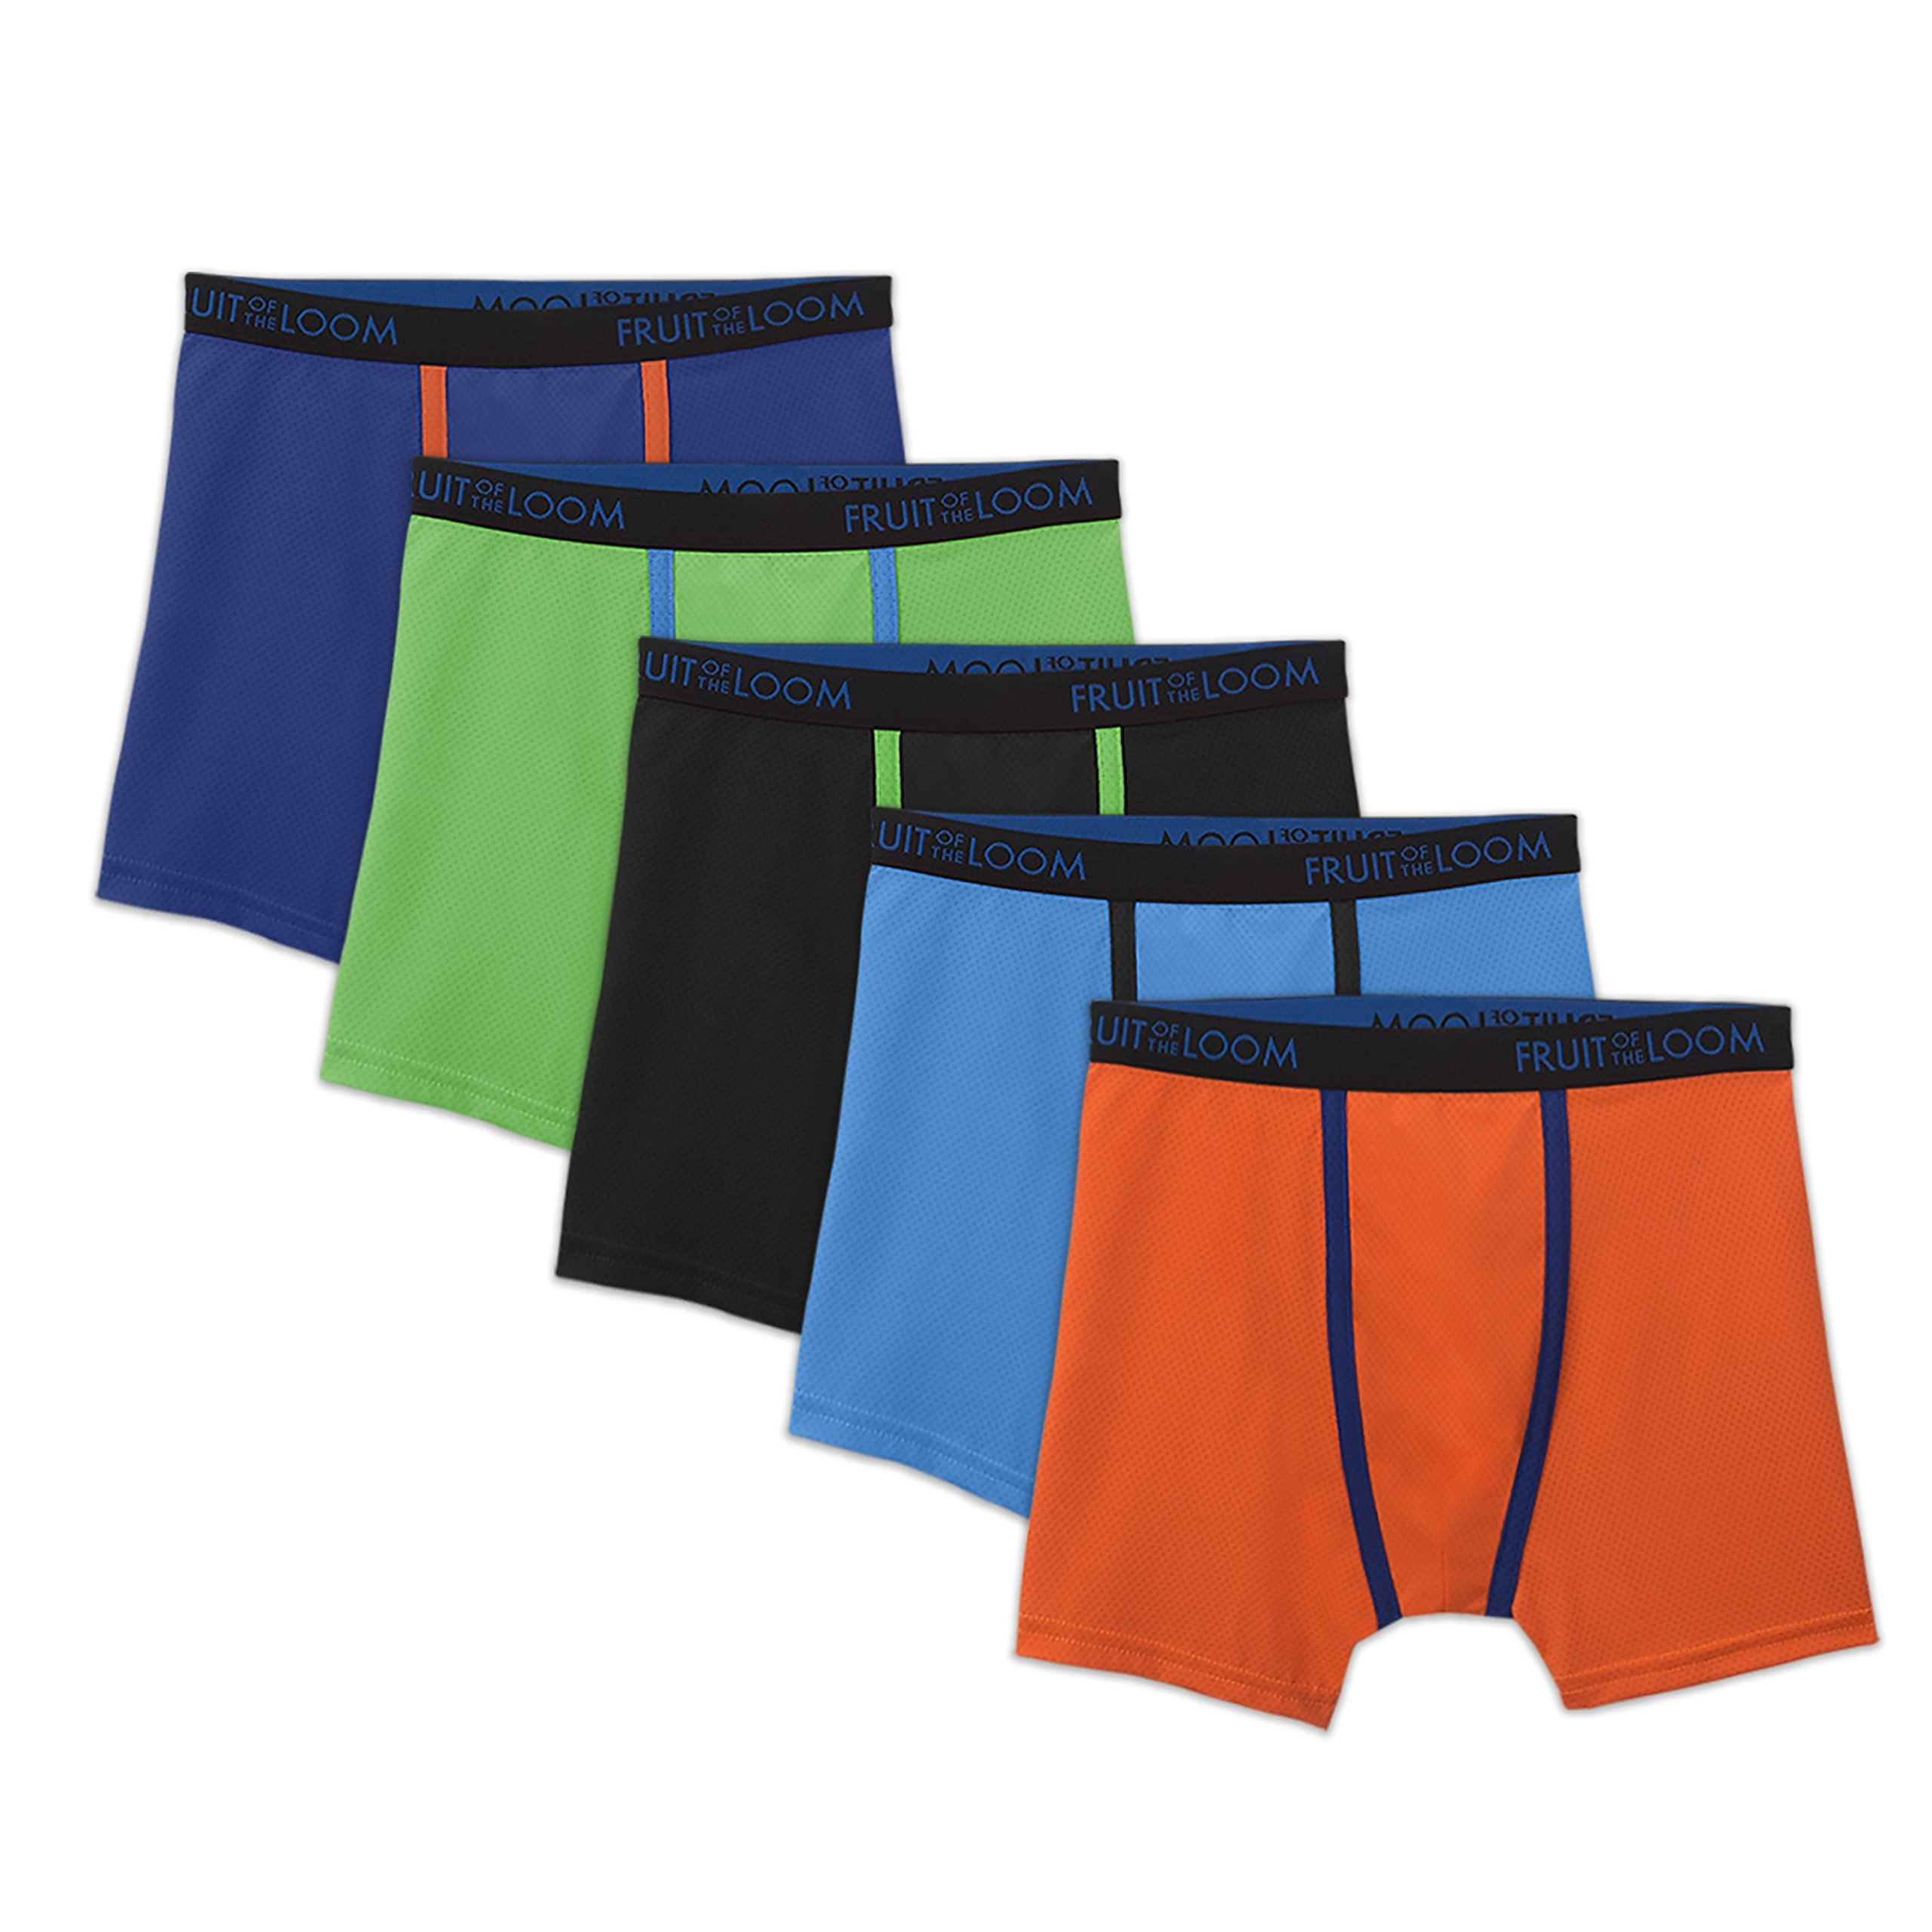 Fruit of the Loom Big Boys' 5 Pack Breathable Boxer Brief, Micro/Mesh Assorted, Medium